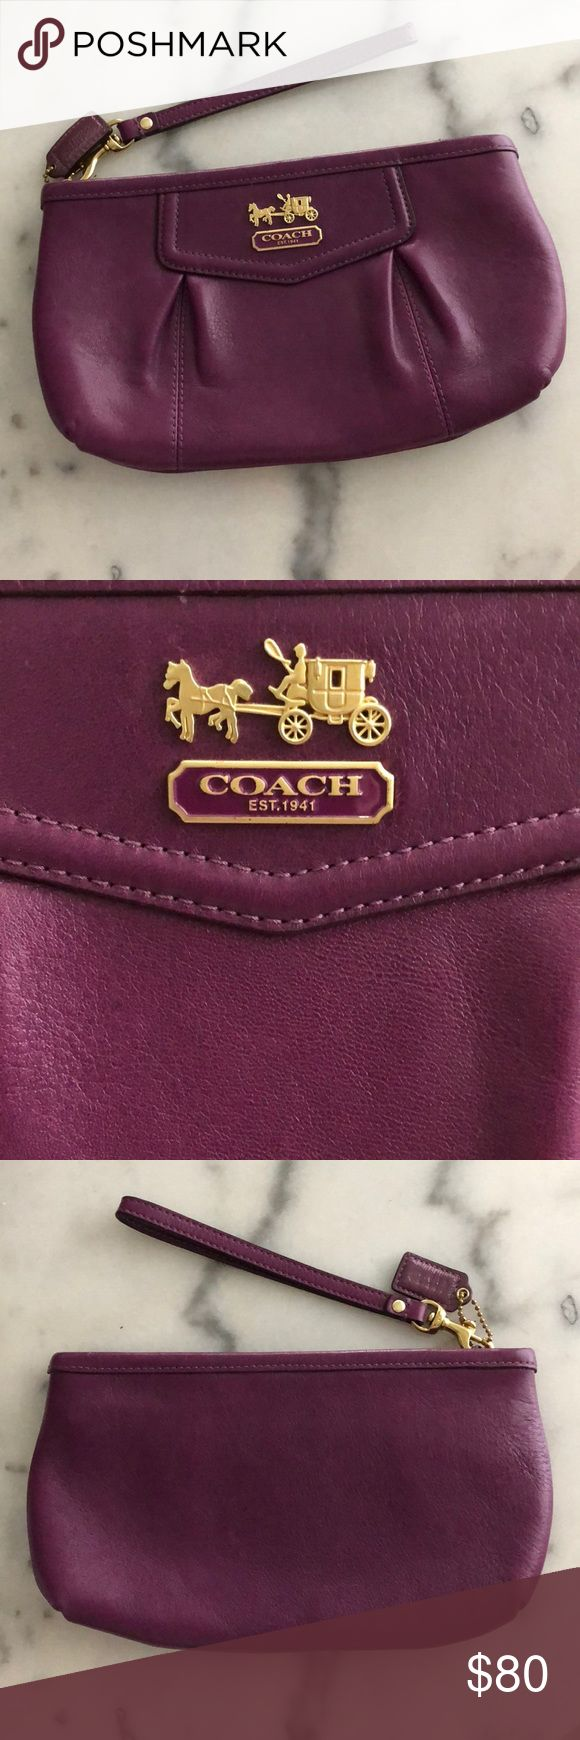 Purple Leather Coach Clutch/Wristlet Purple Leather Coach Clutch/Wristlet. Impeccable condition, no flaws! Measures approximately 10 inches wide by 6 inches tall. Detachable Wristlet piece. Coach Bags Clutches & Wristlets